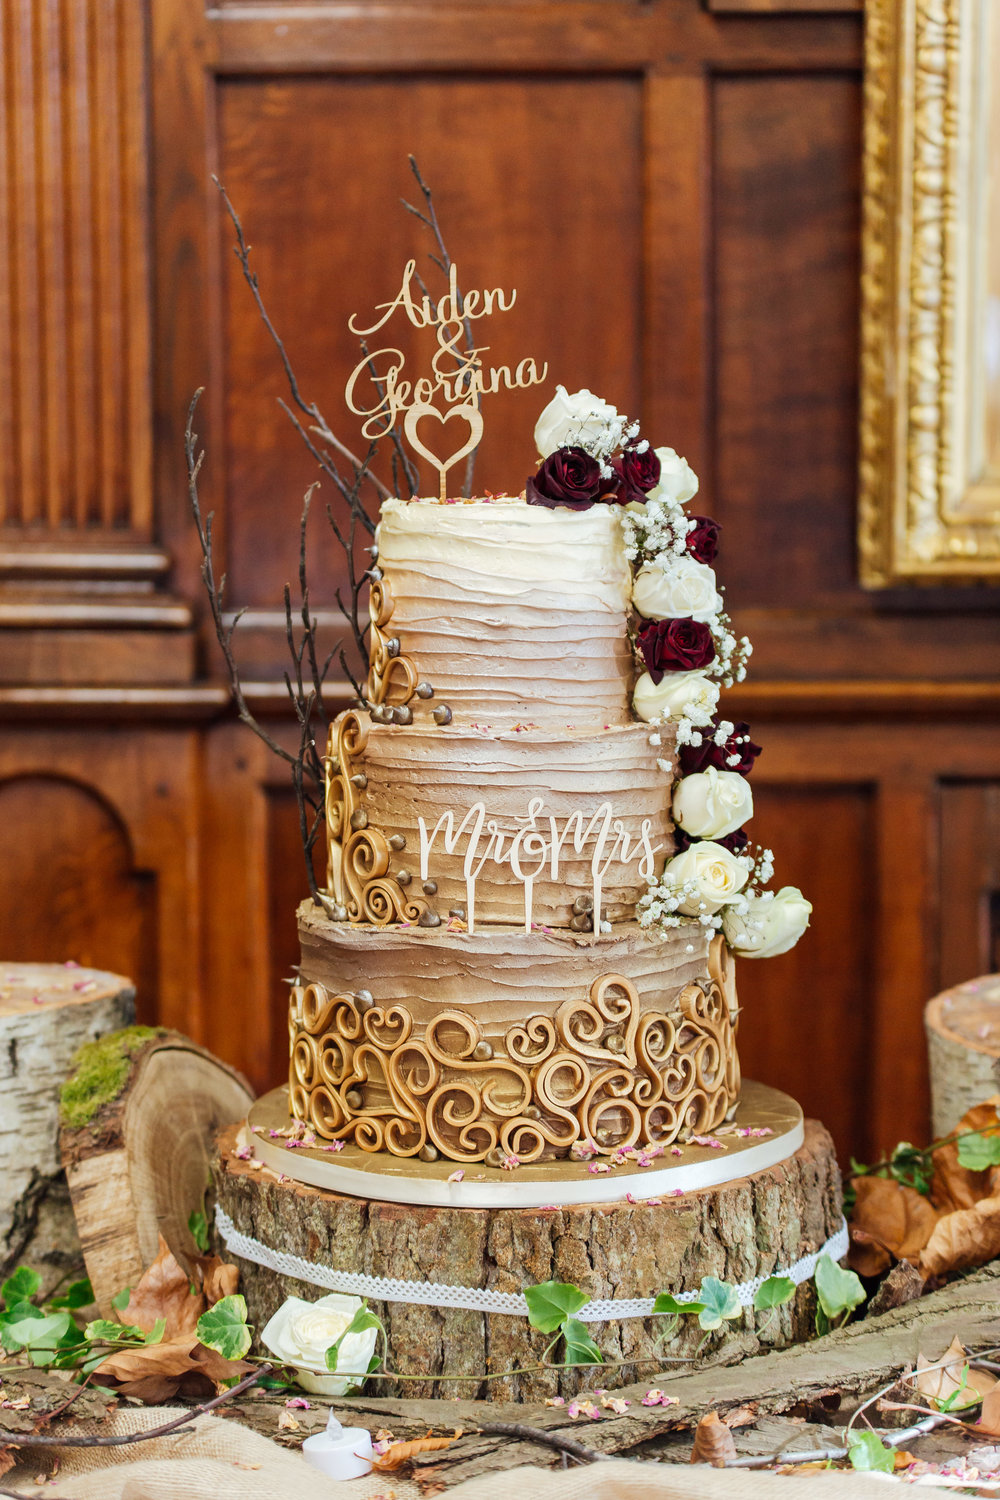 amazing-unique-rustic-wedding-cake / Amy-james-photography / hampshire-wedding-photographer-hampshire